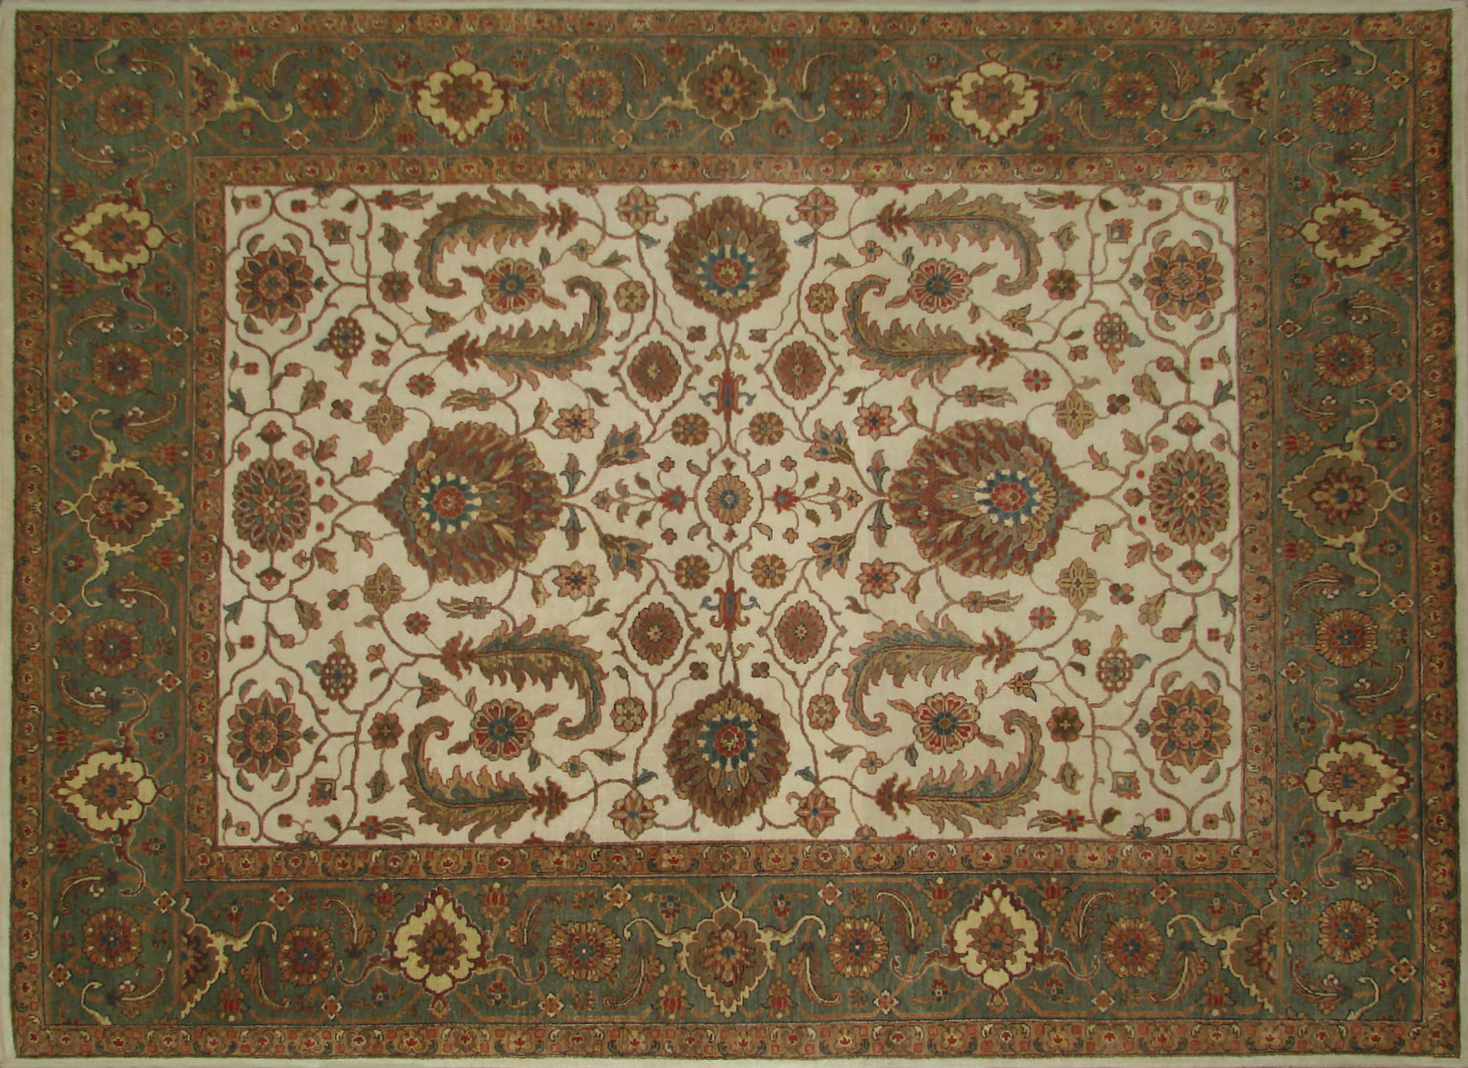 8x10 Antique Revival Hand Knotted Wool Area Rug - MR19910